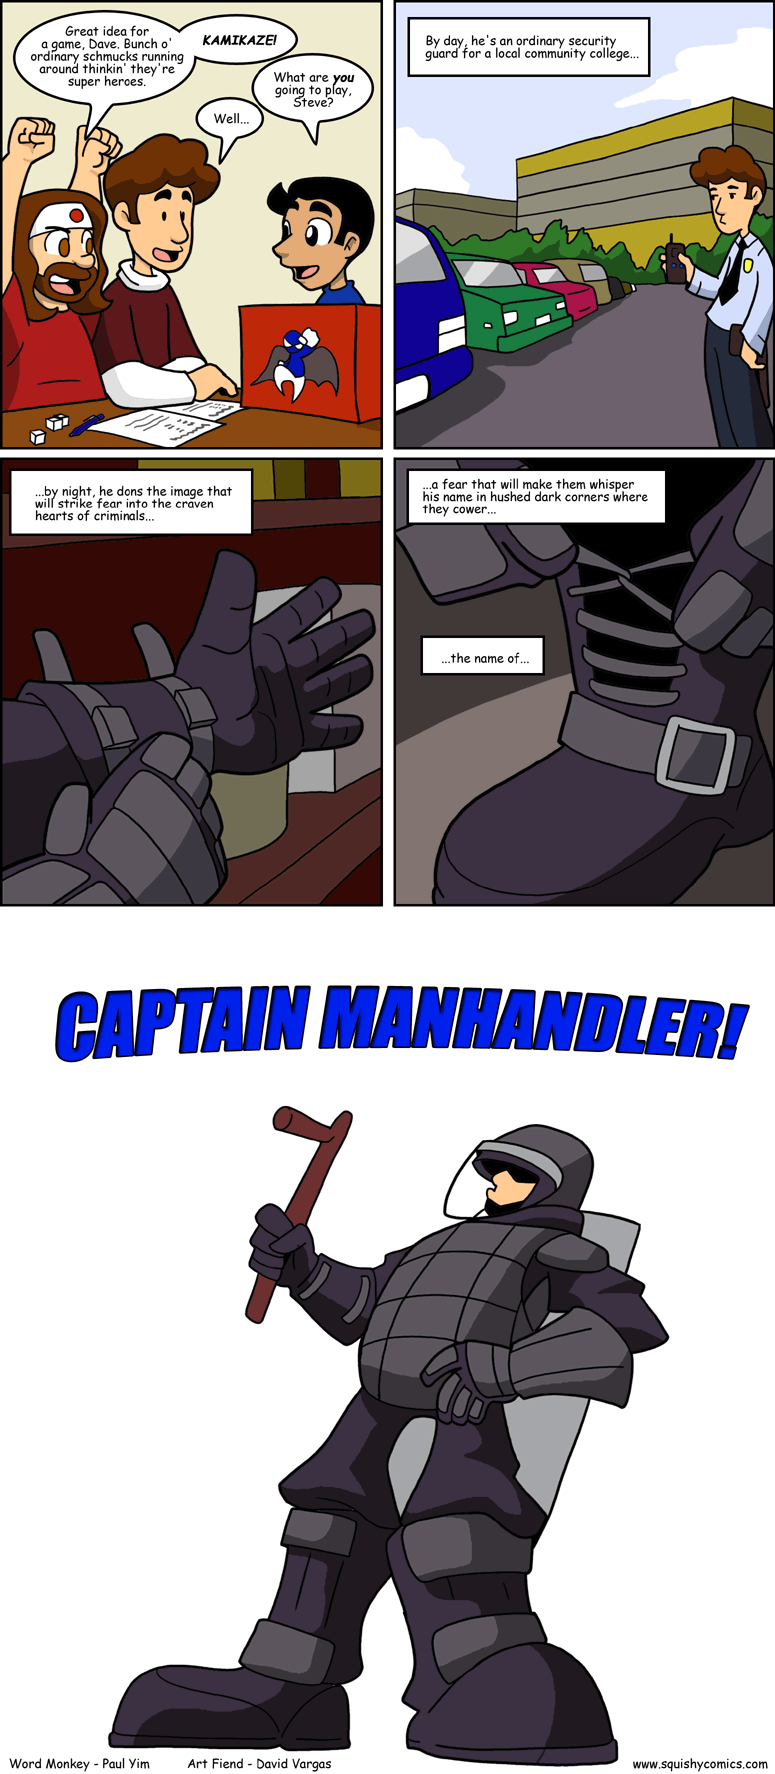 Captain Manhandler